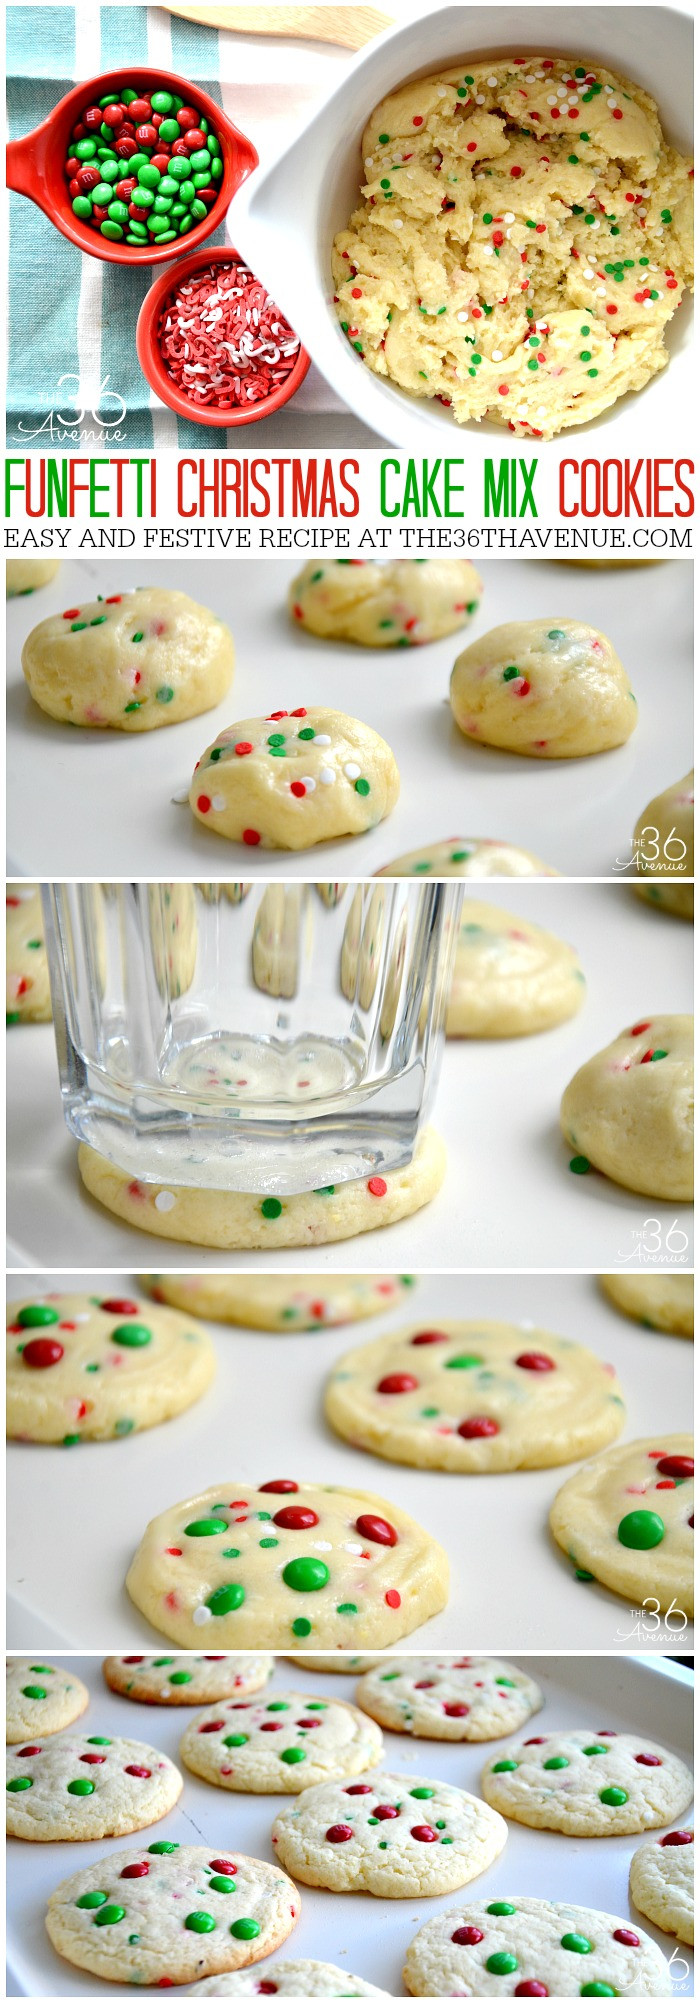 Super Easy Christmas Cookies  Christmas Cookies Funfetti Cookies The 36th AVENUE